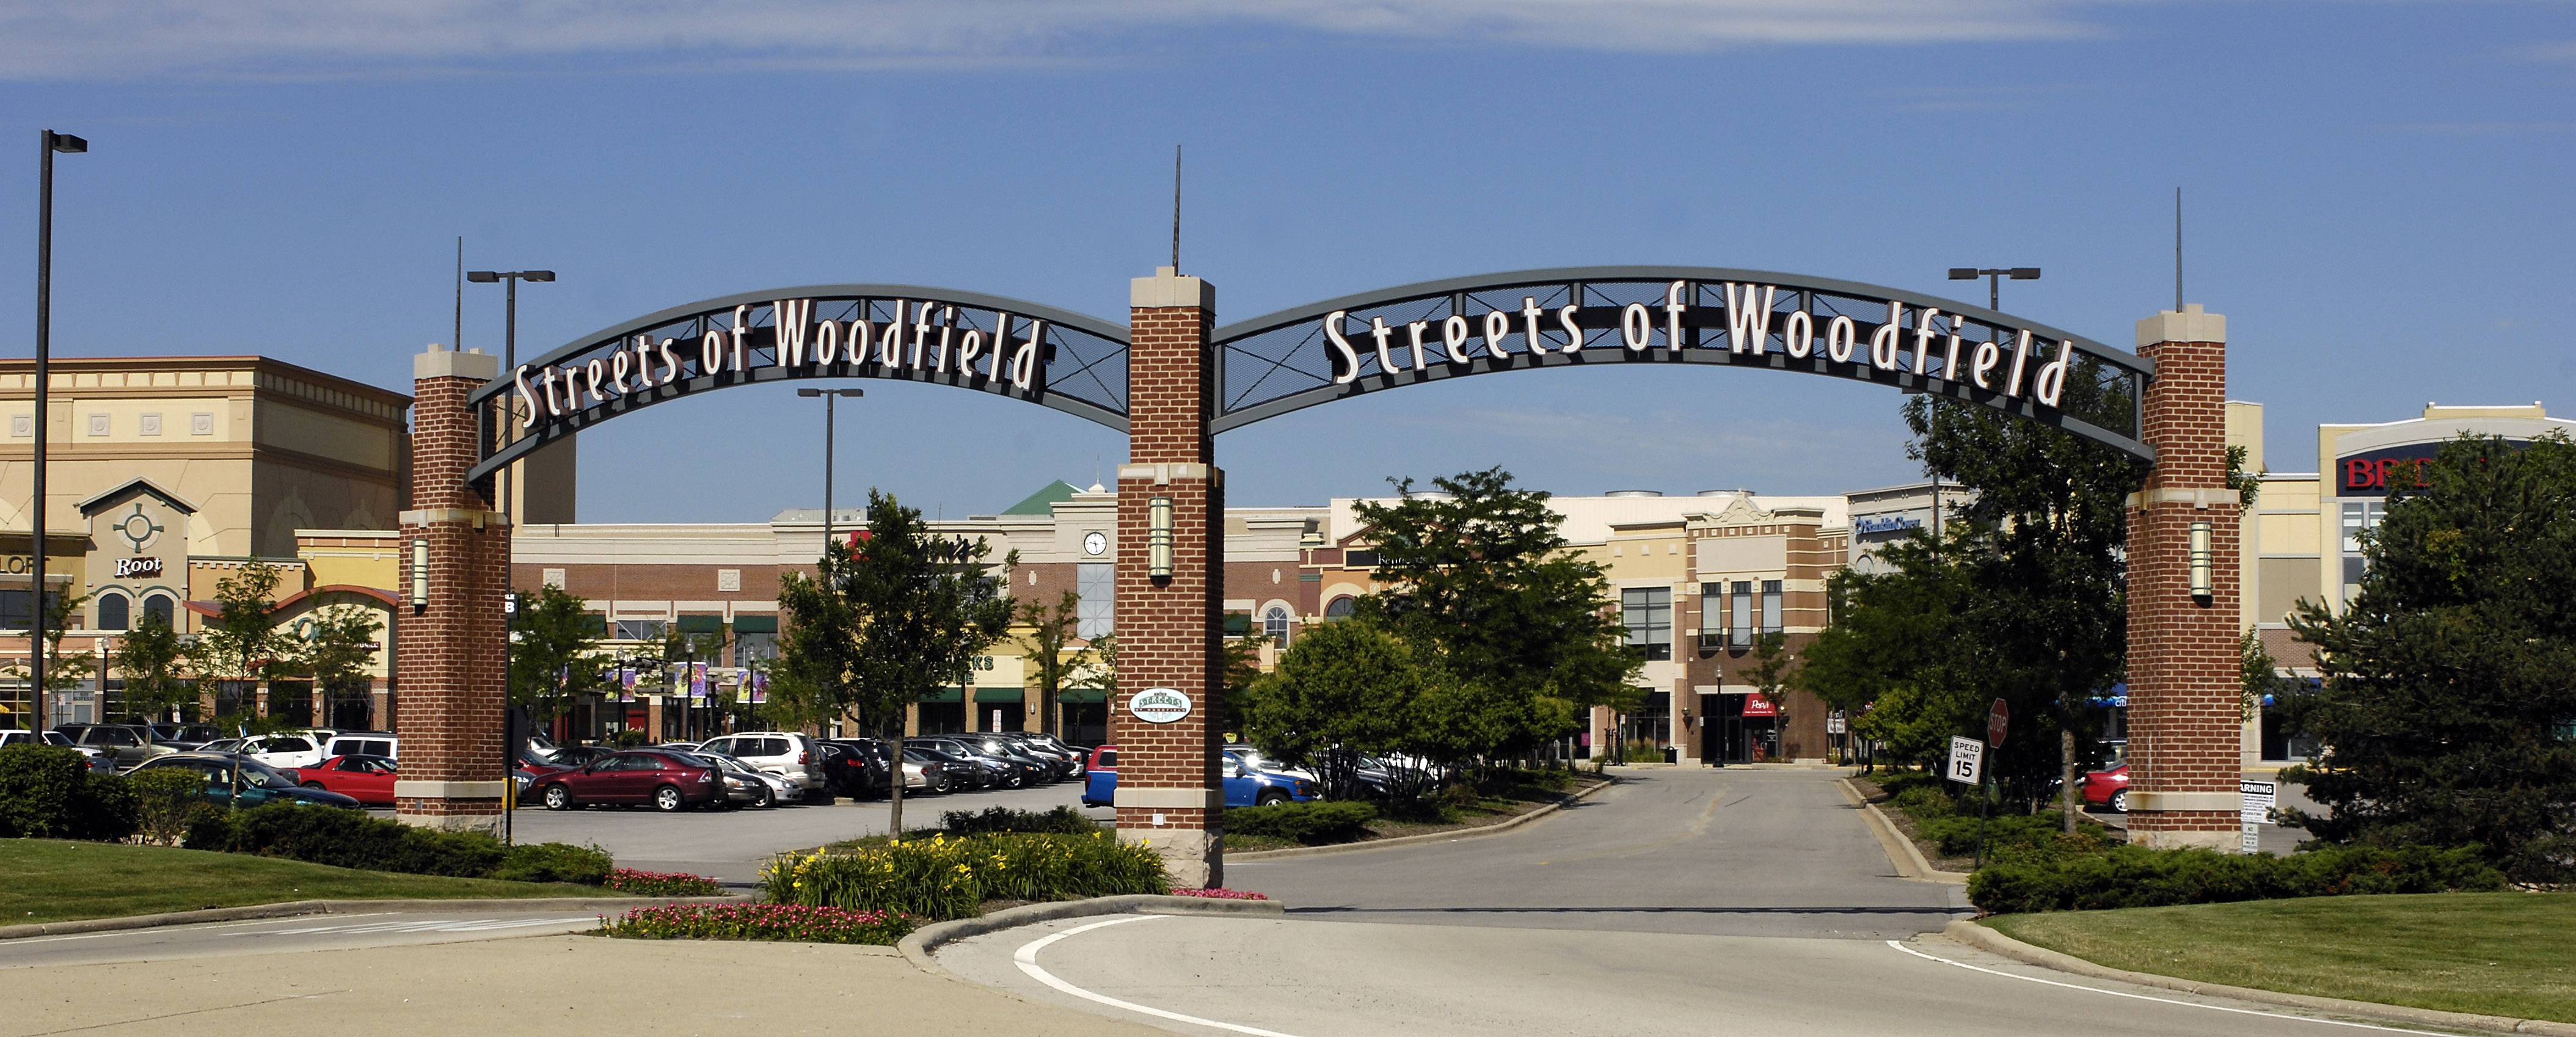 A majority of Schaumburg trustees Tuesday agreed to allow two 400-square-foot LED signs on the parking garage of Streets of Woodfield shopping center as well as more ground signs.